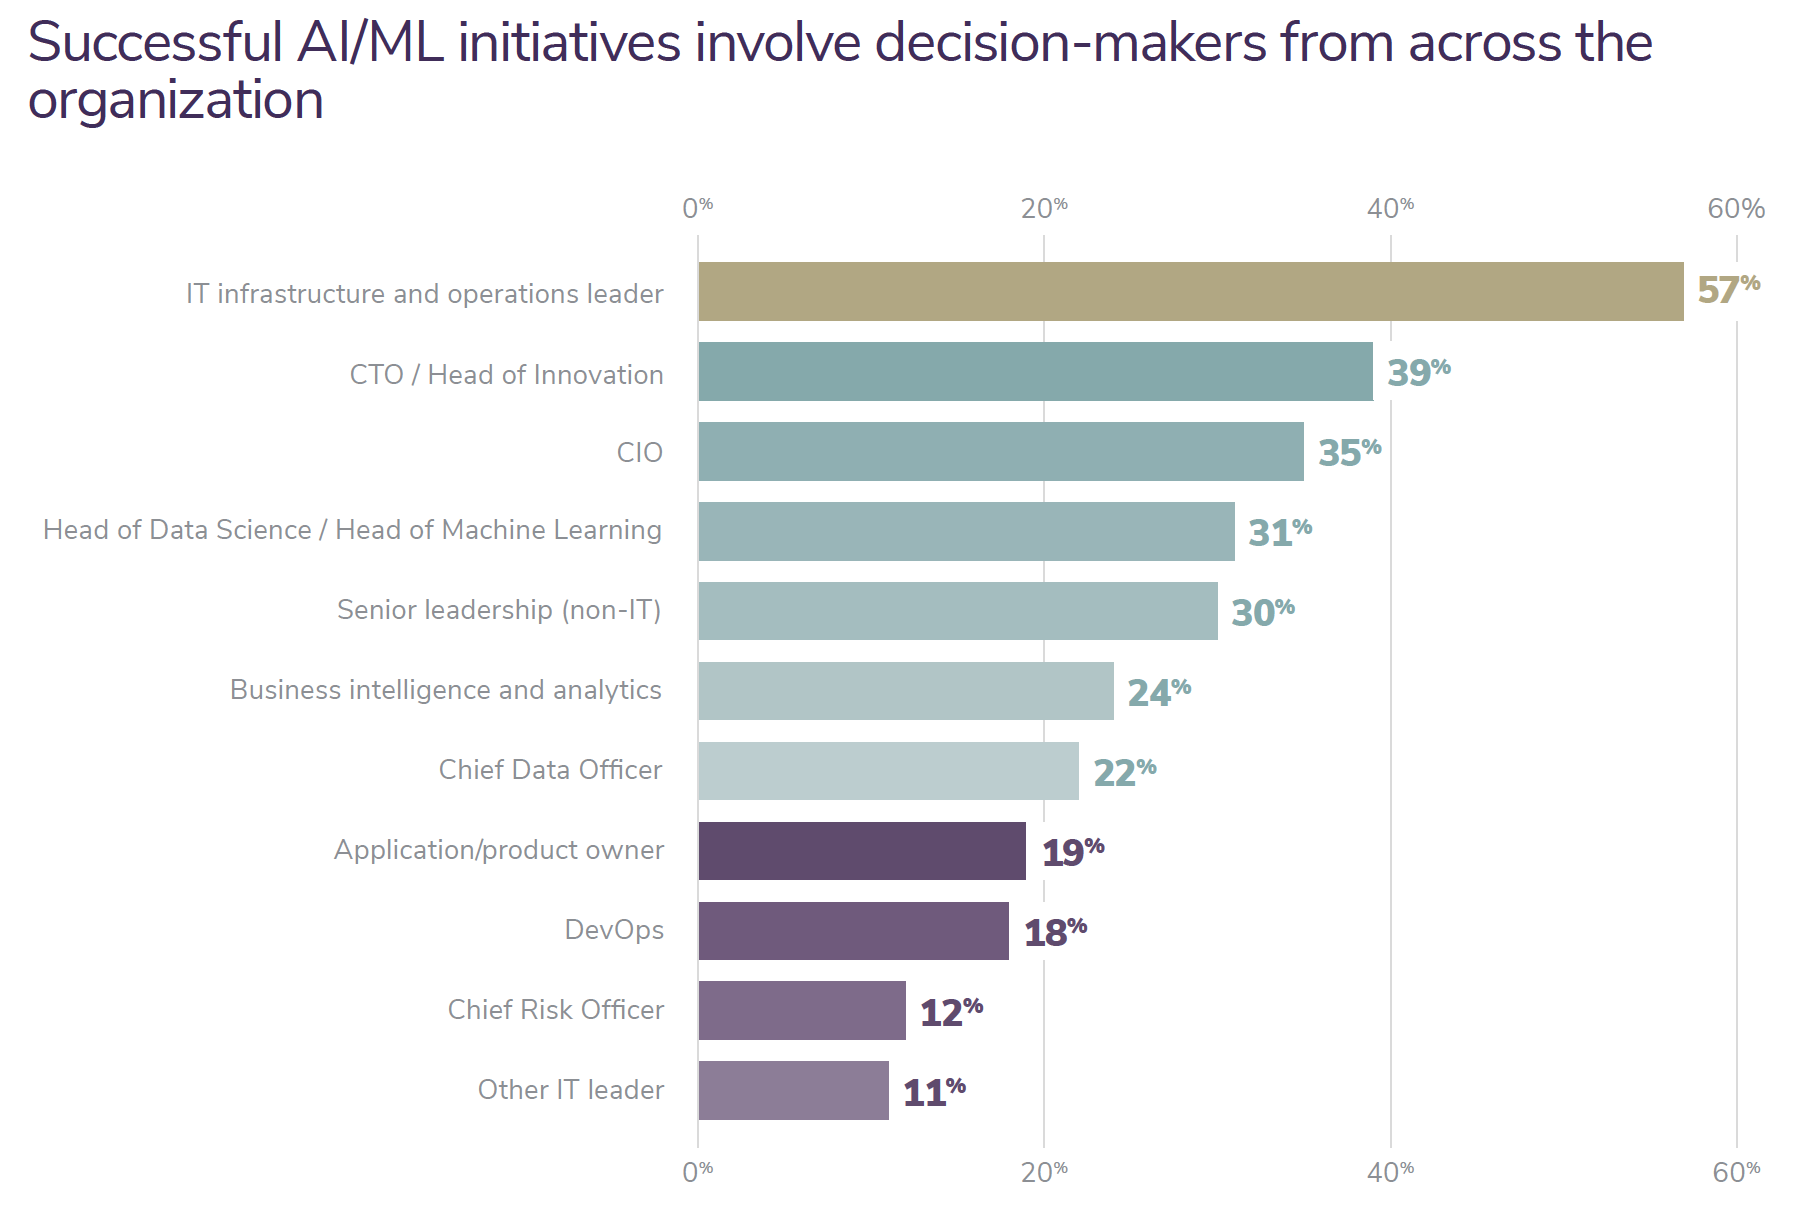 Successful AI/ML initiatives involve decision-makers from across the organization